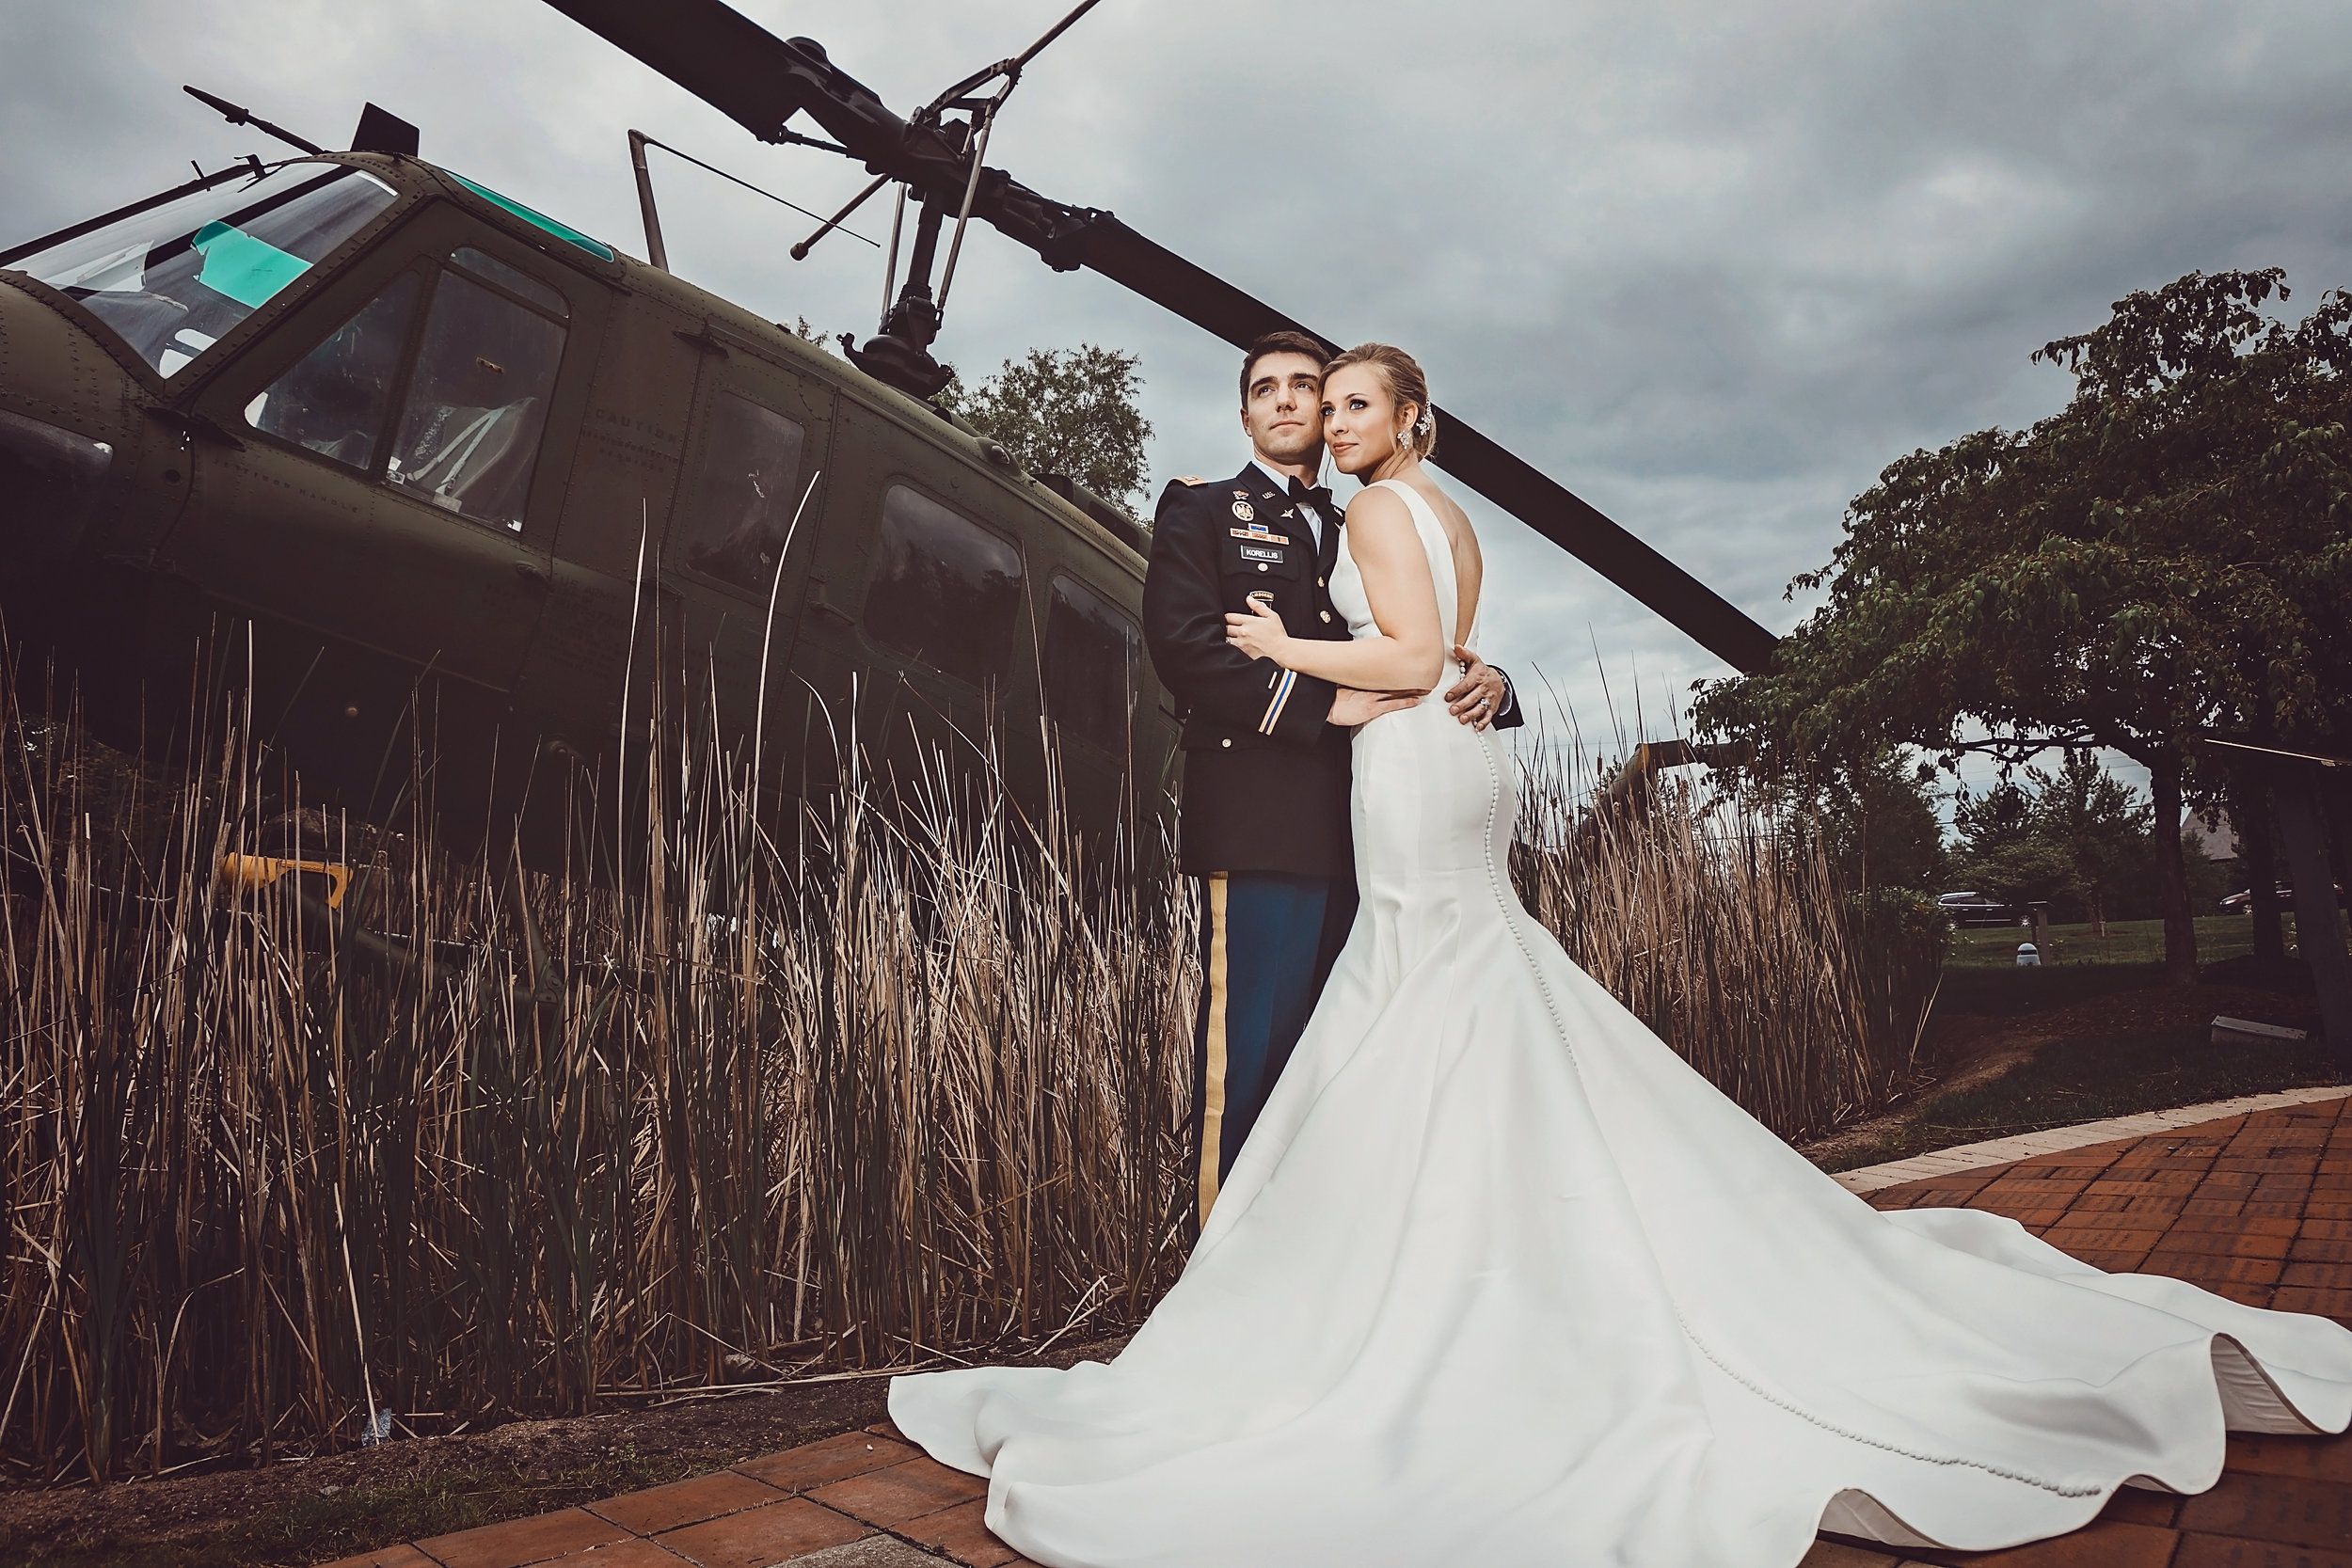 Bride-and-groom-helicopter.jpg